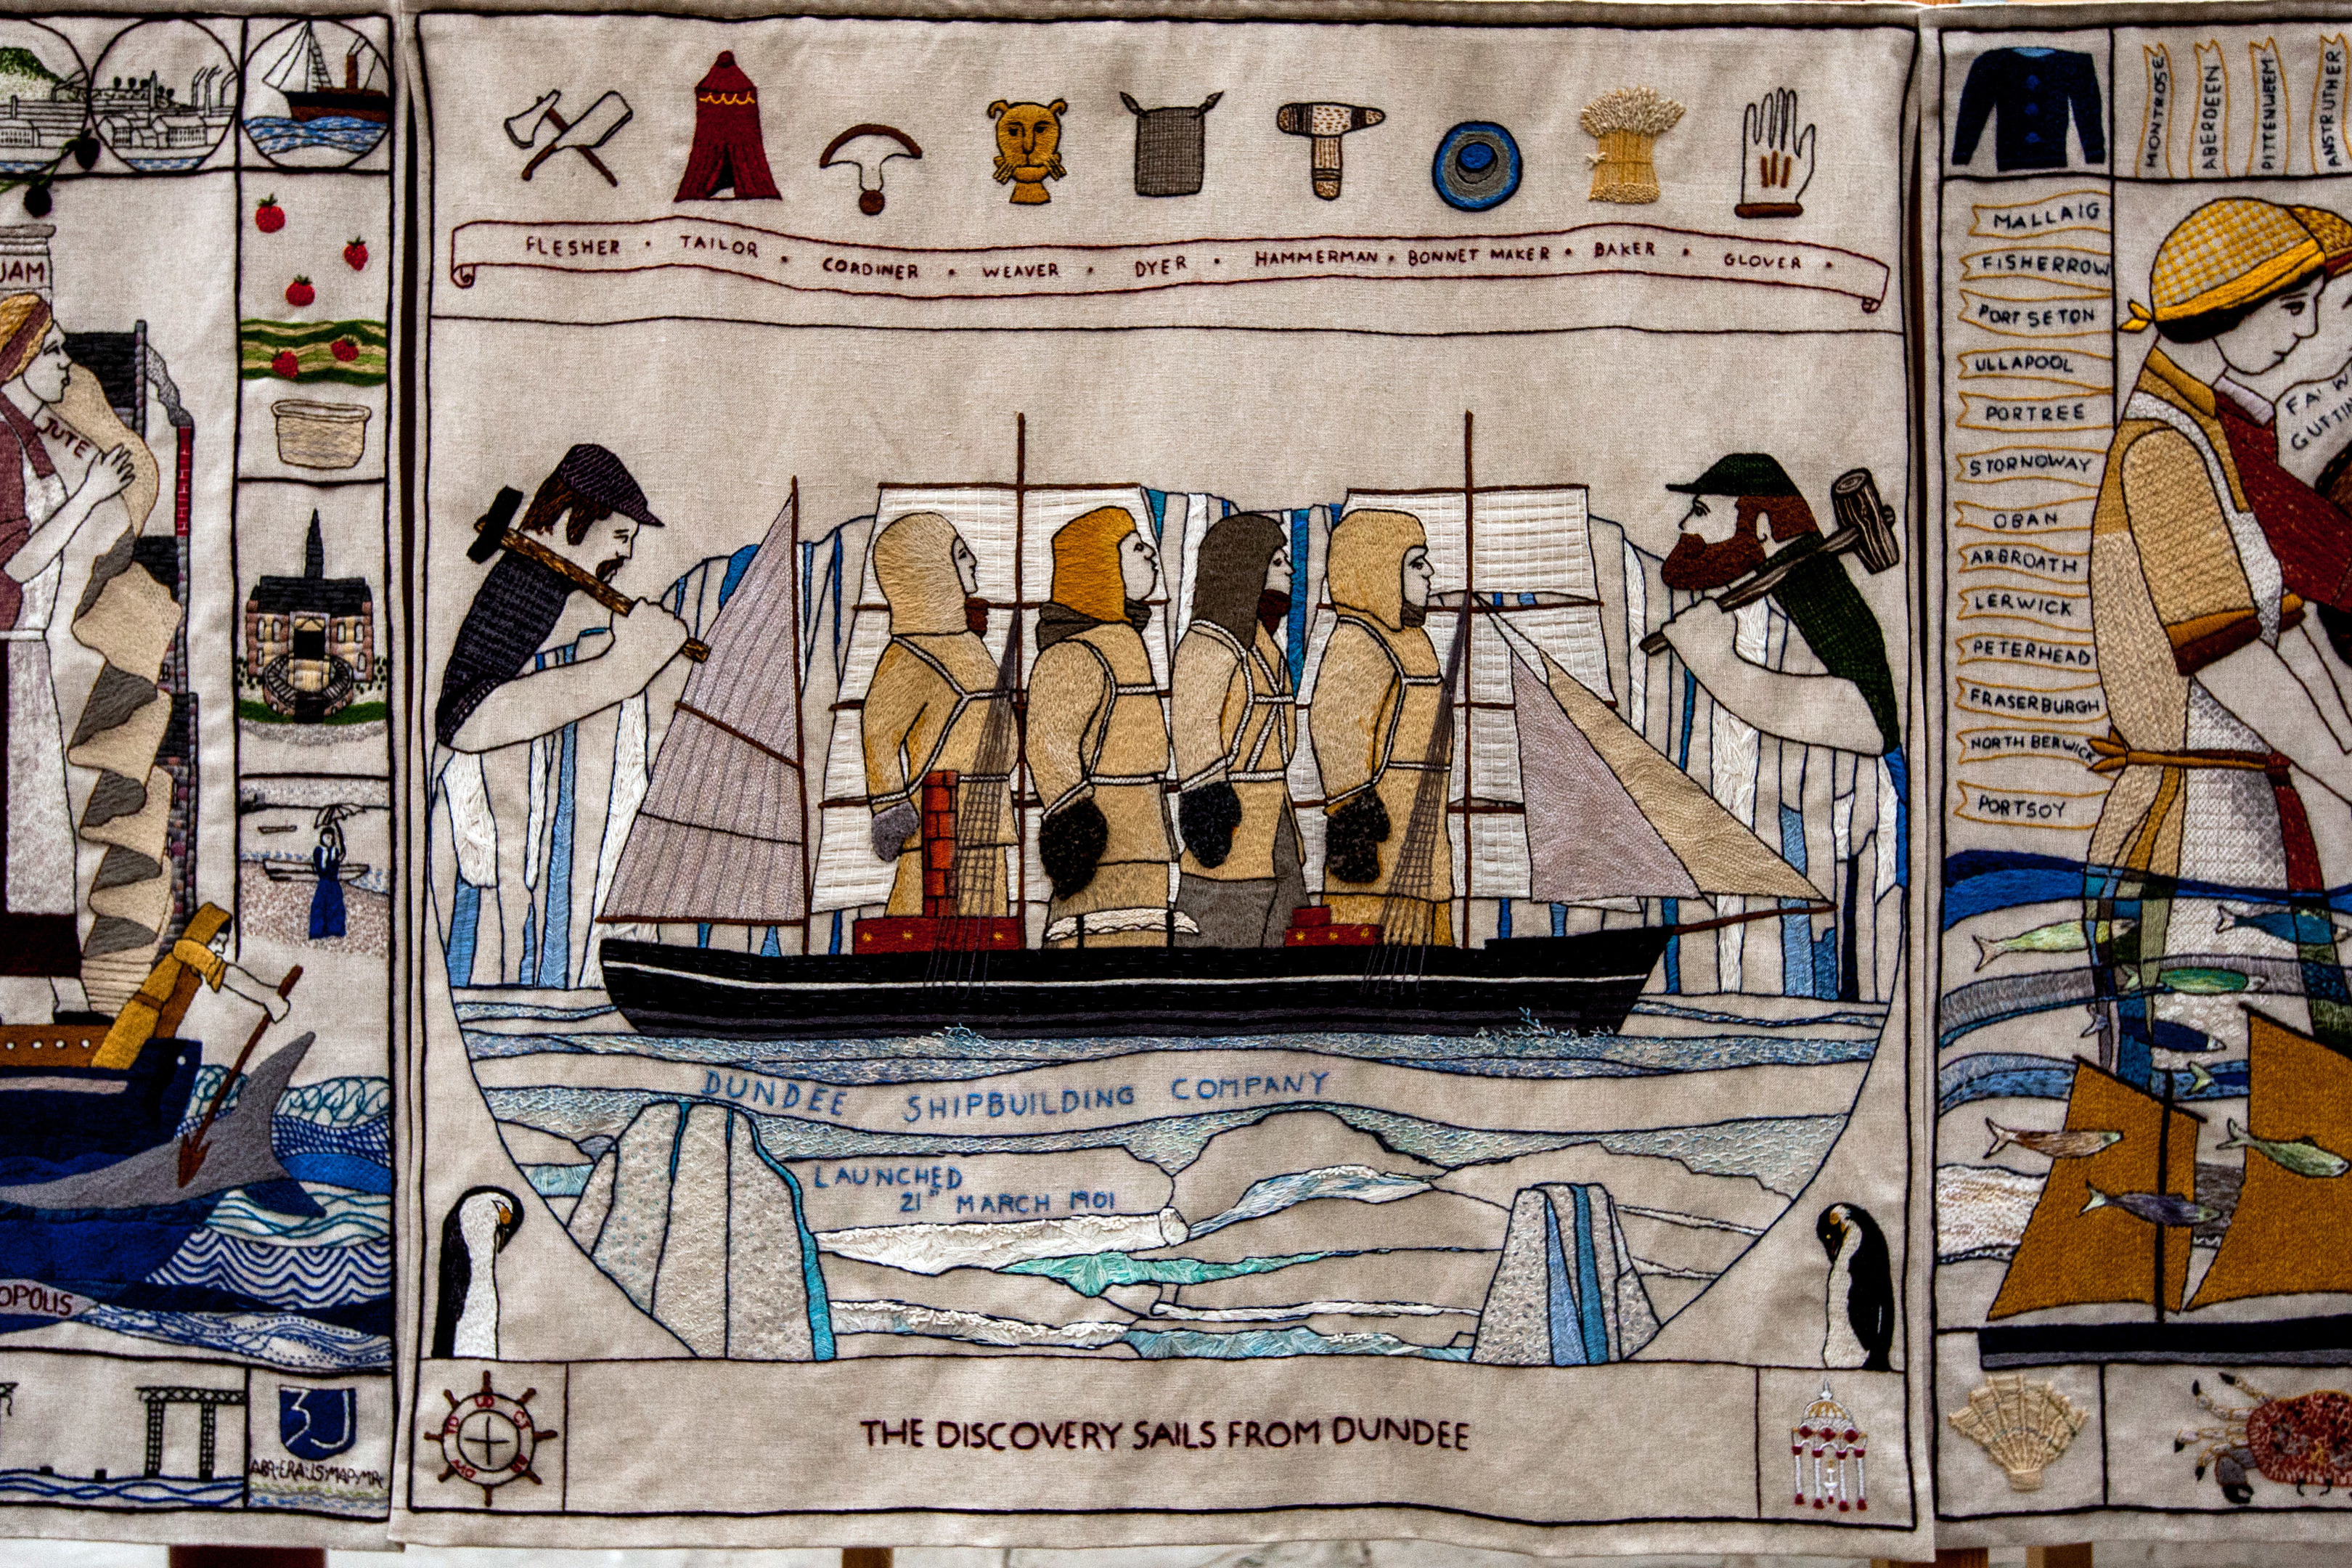 'The Discovery sails from Dundee' panel, stitched in Newport on Tay by 5 people.